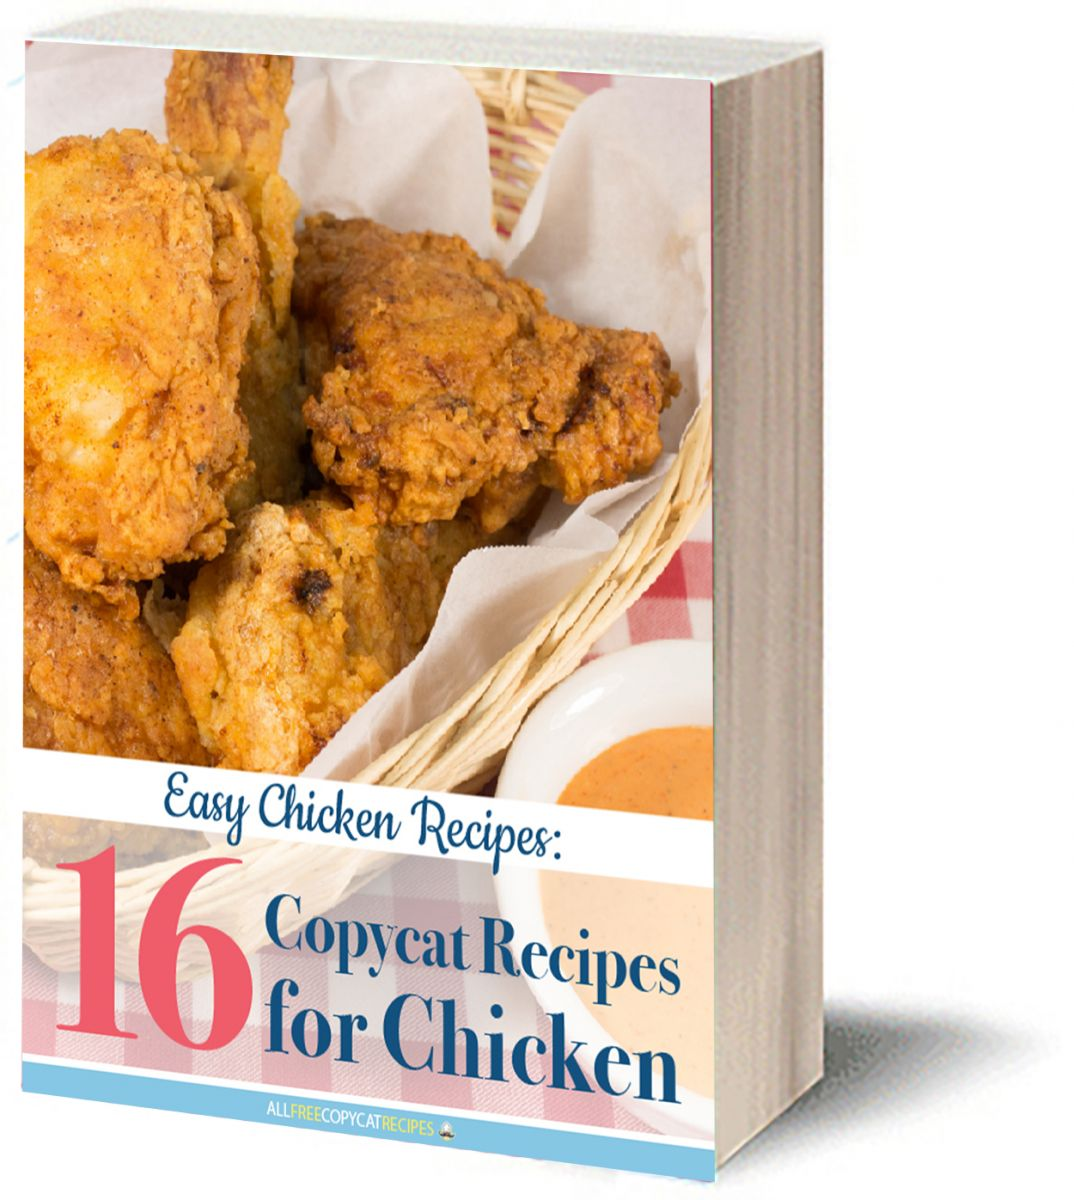 10 Copycat Recipes from Restaurants & Brand Name Recipes Free eCookbook